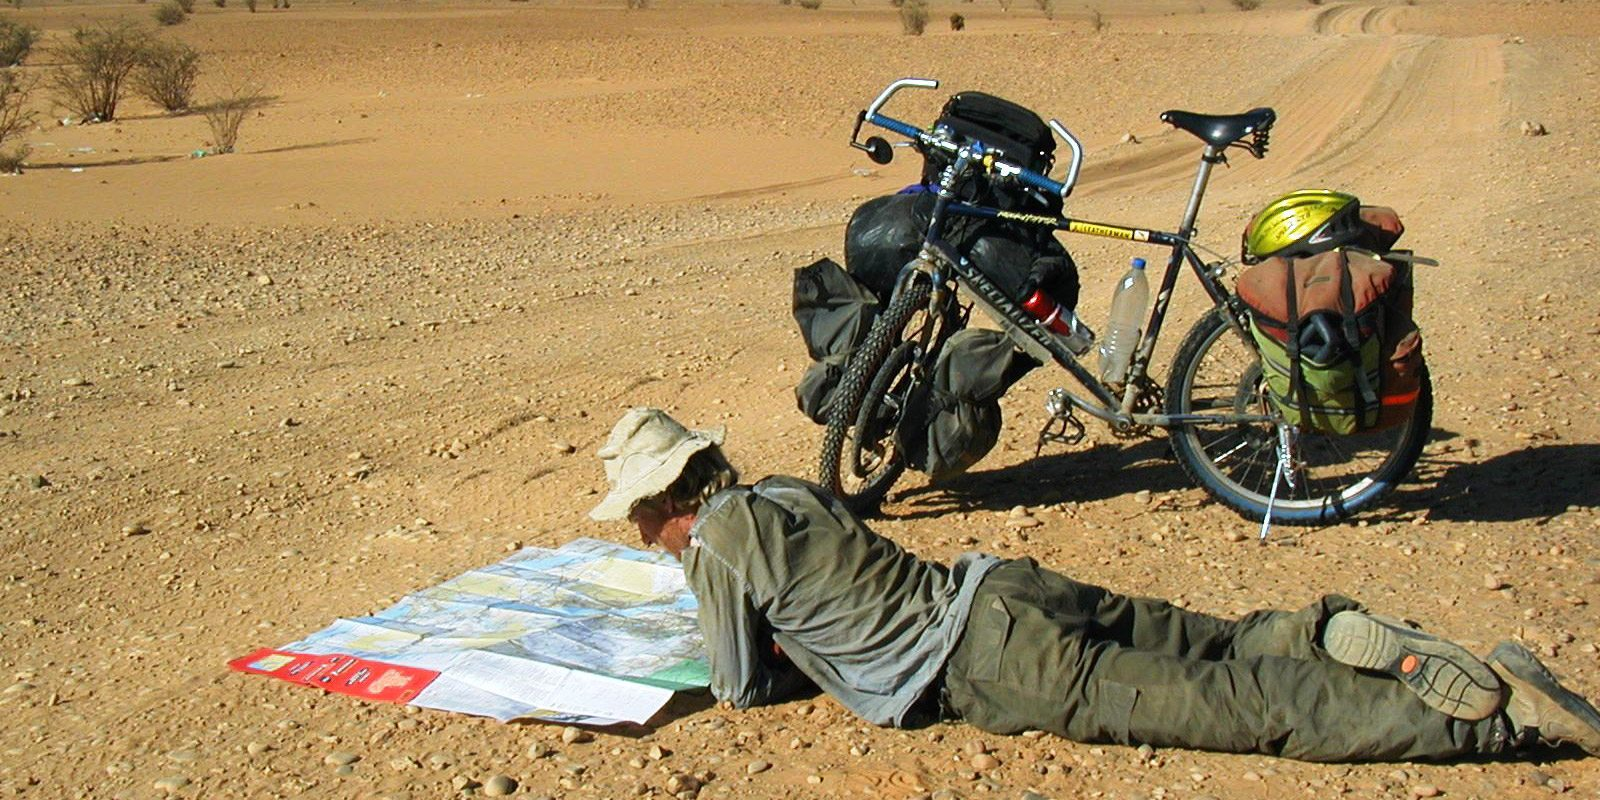 Alastair Humphreys cycling across Sudan